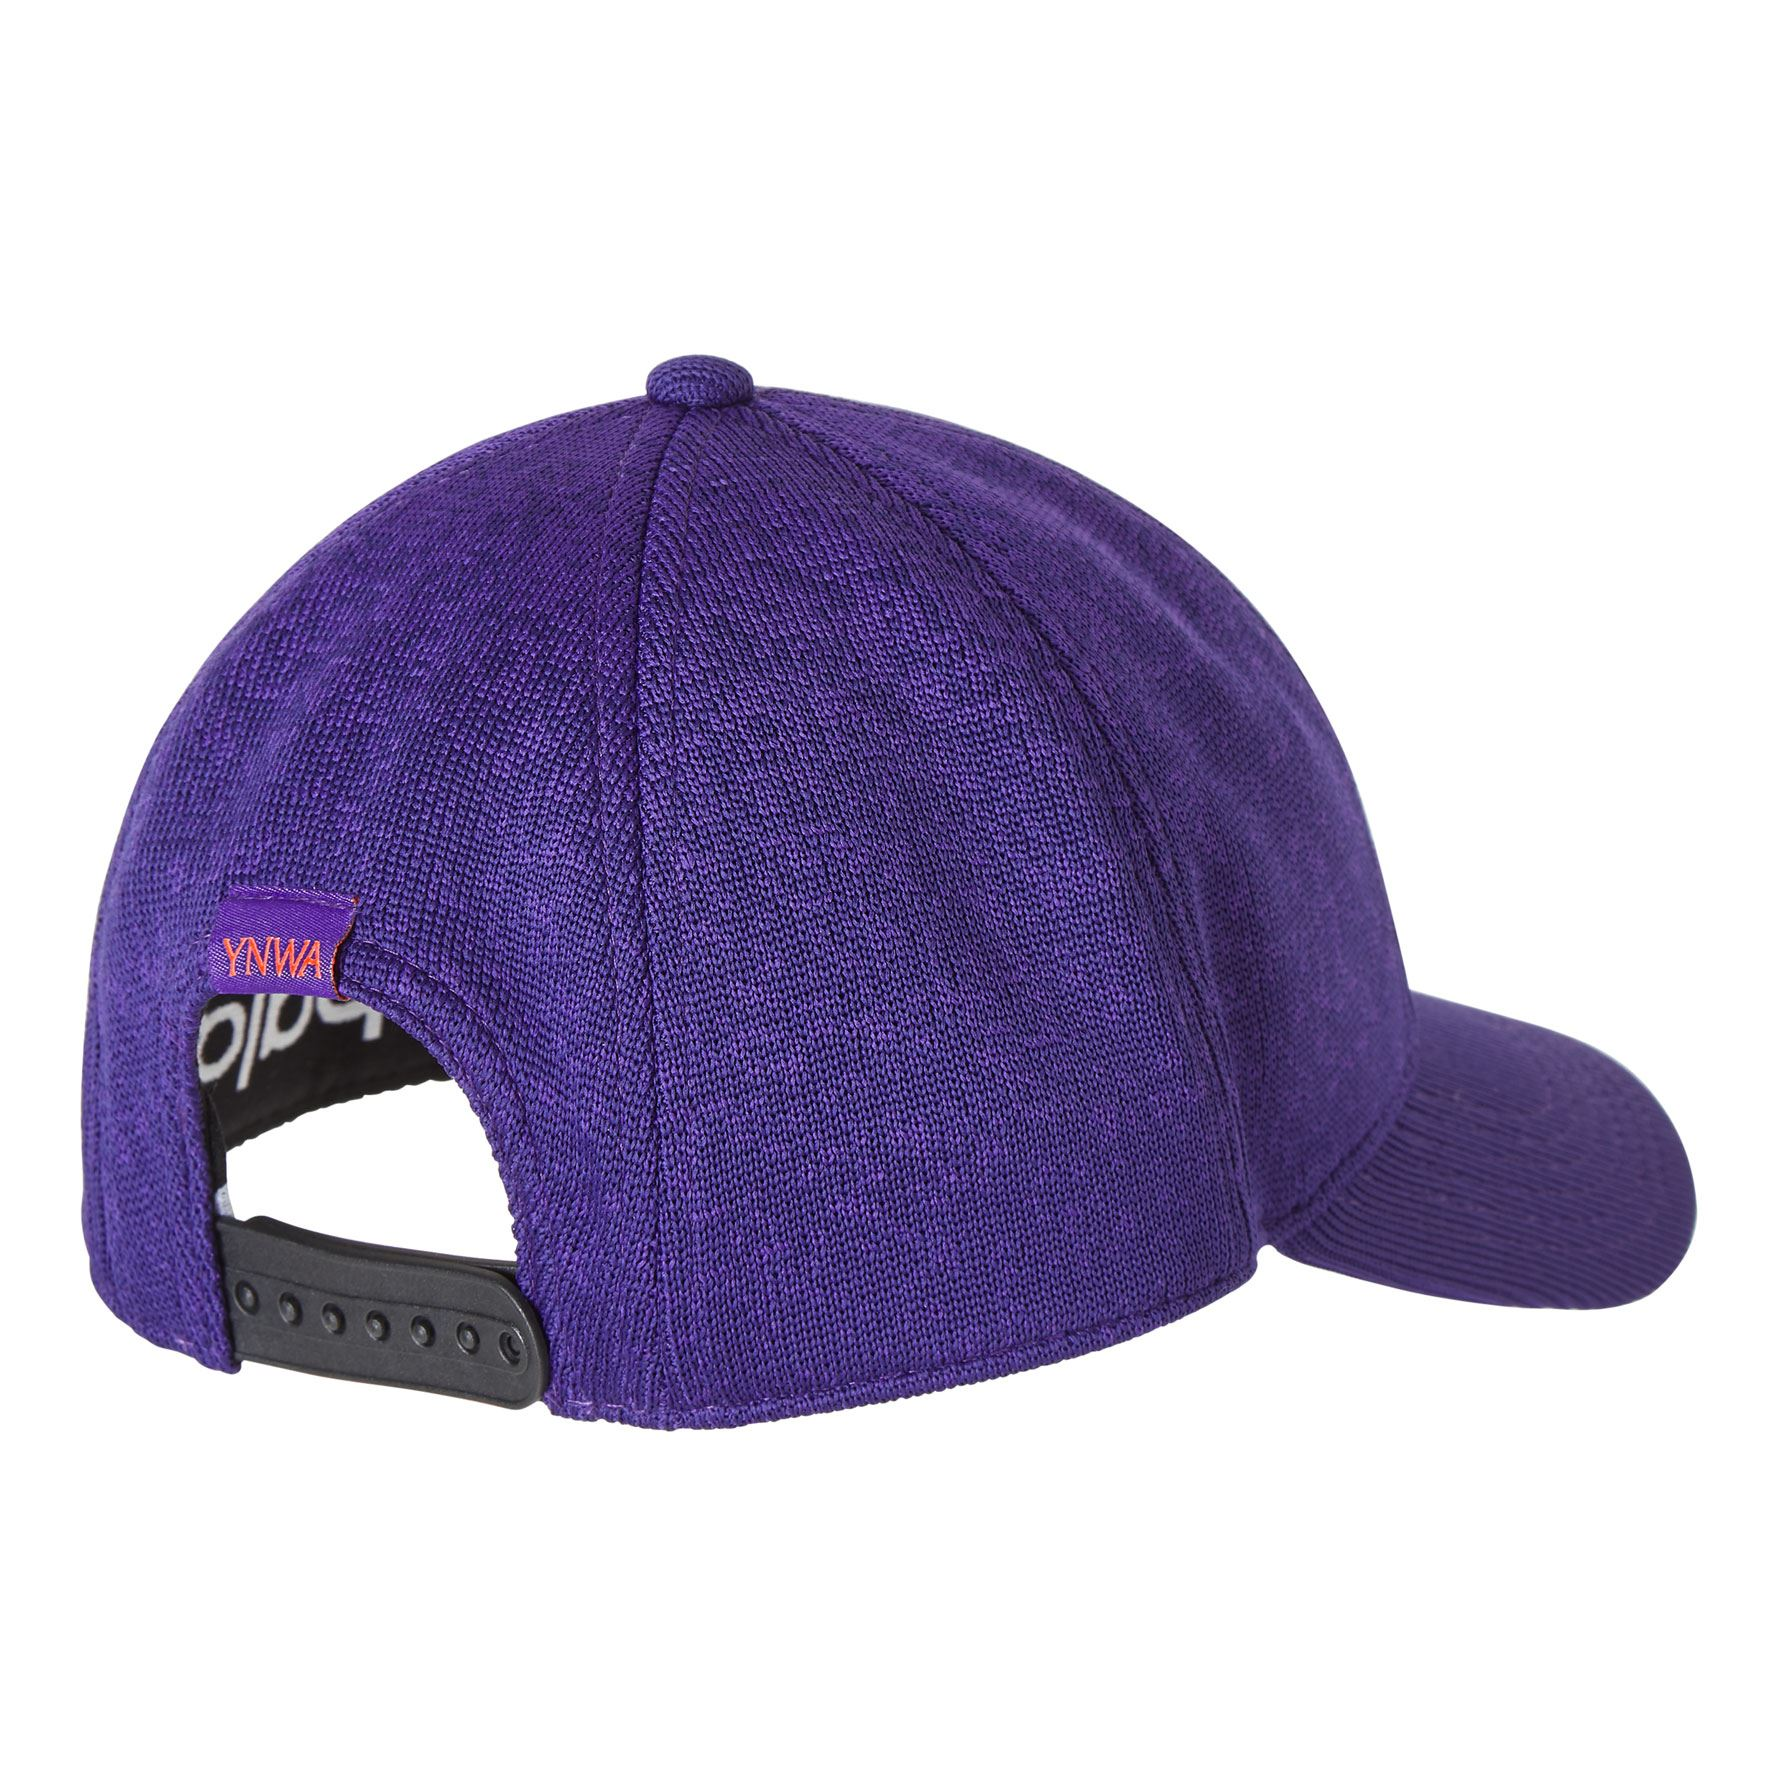 916289a8fcb Liverpool FC NB Purple Klopp Marl Cap 18 19 LFC Official ...